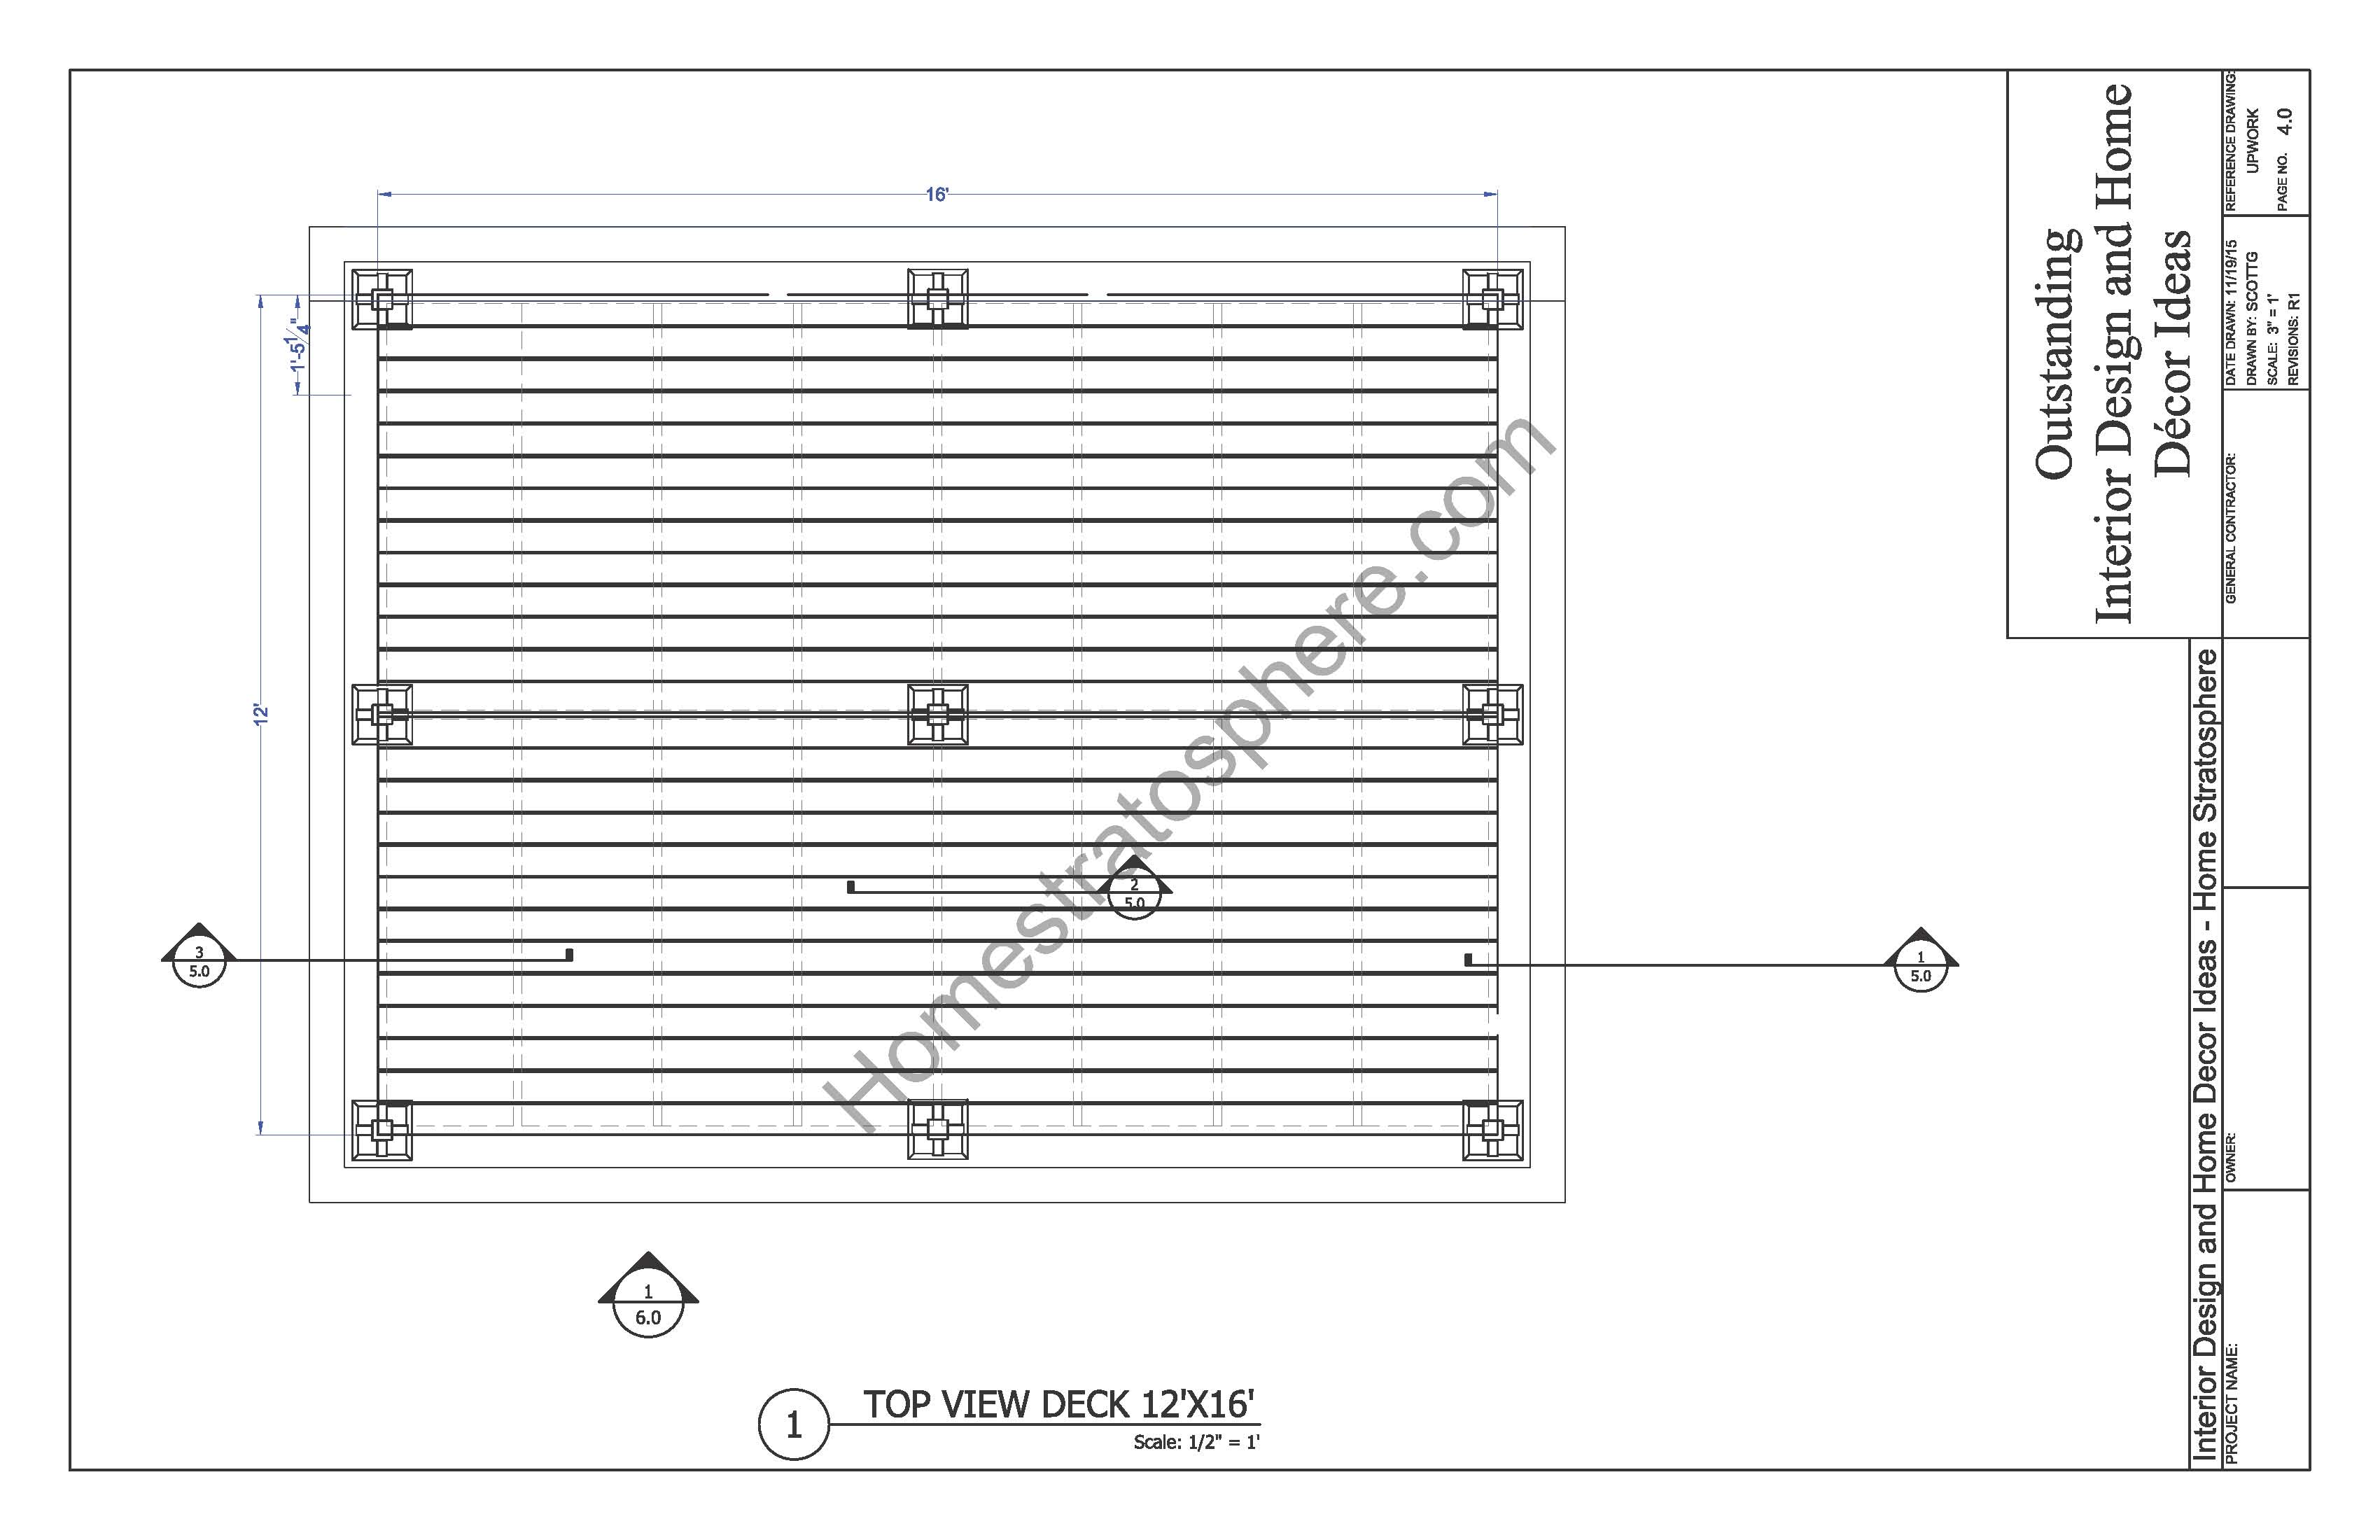 Free ground flat deck plan with pdf blueprint download for Decor fusion interior design agency manchester m3